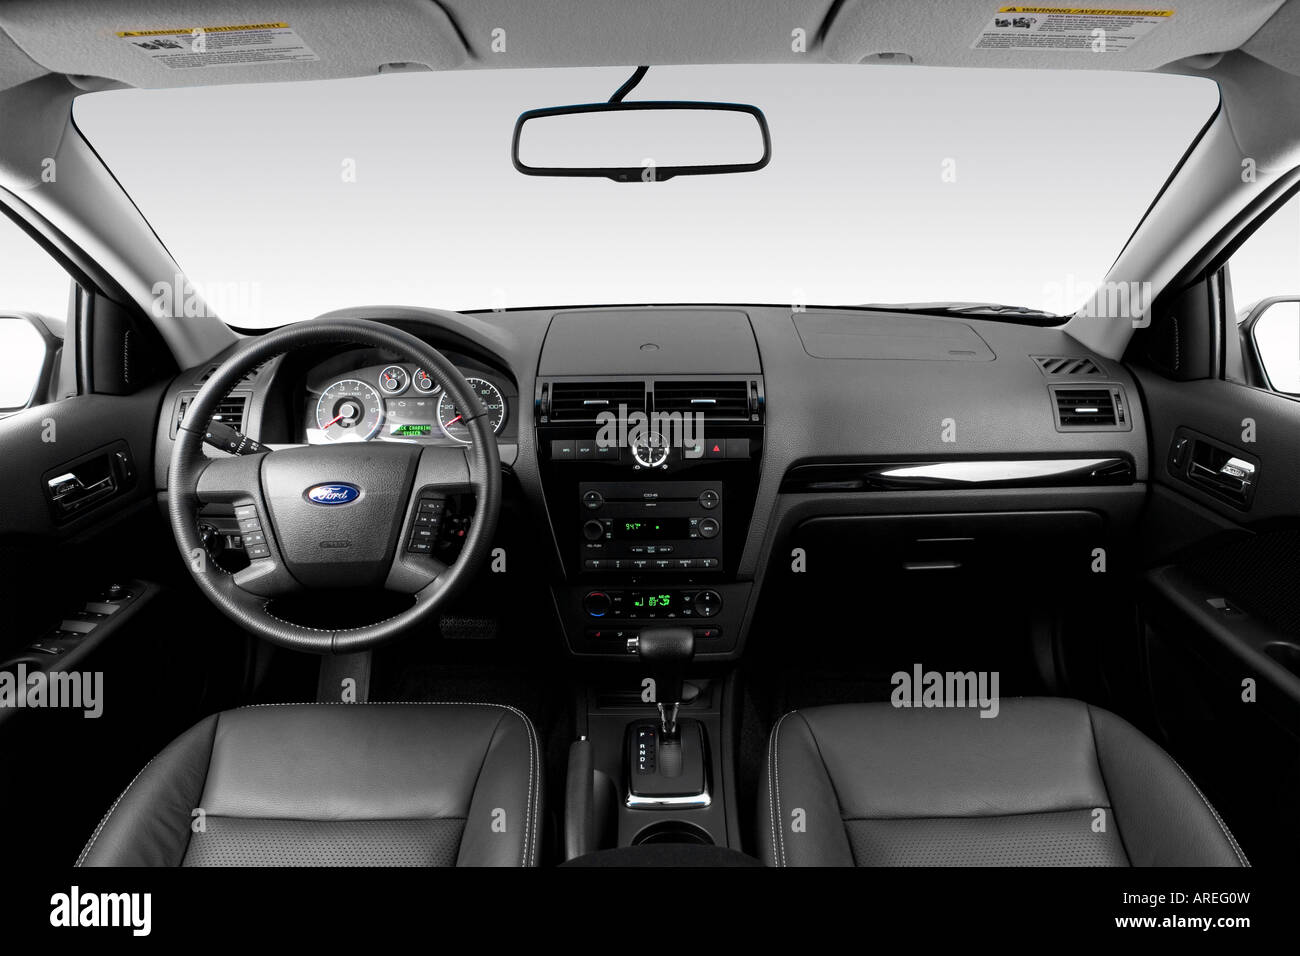 2006 ford fusion sel v6 in black dashboard center. Black Bedroom Furniture Sets. Home Design Ideas